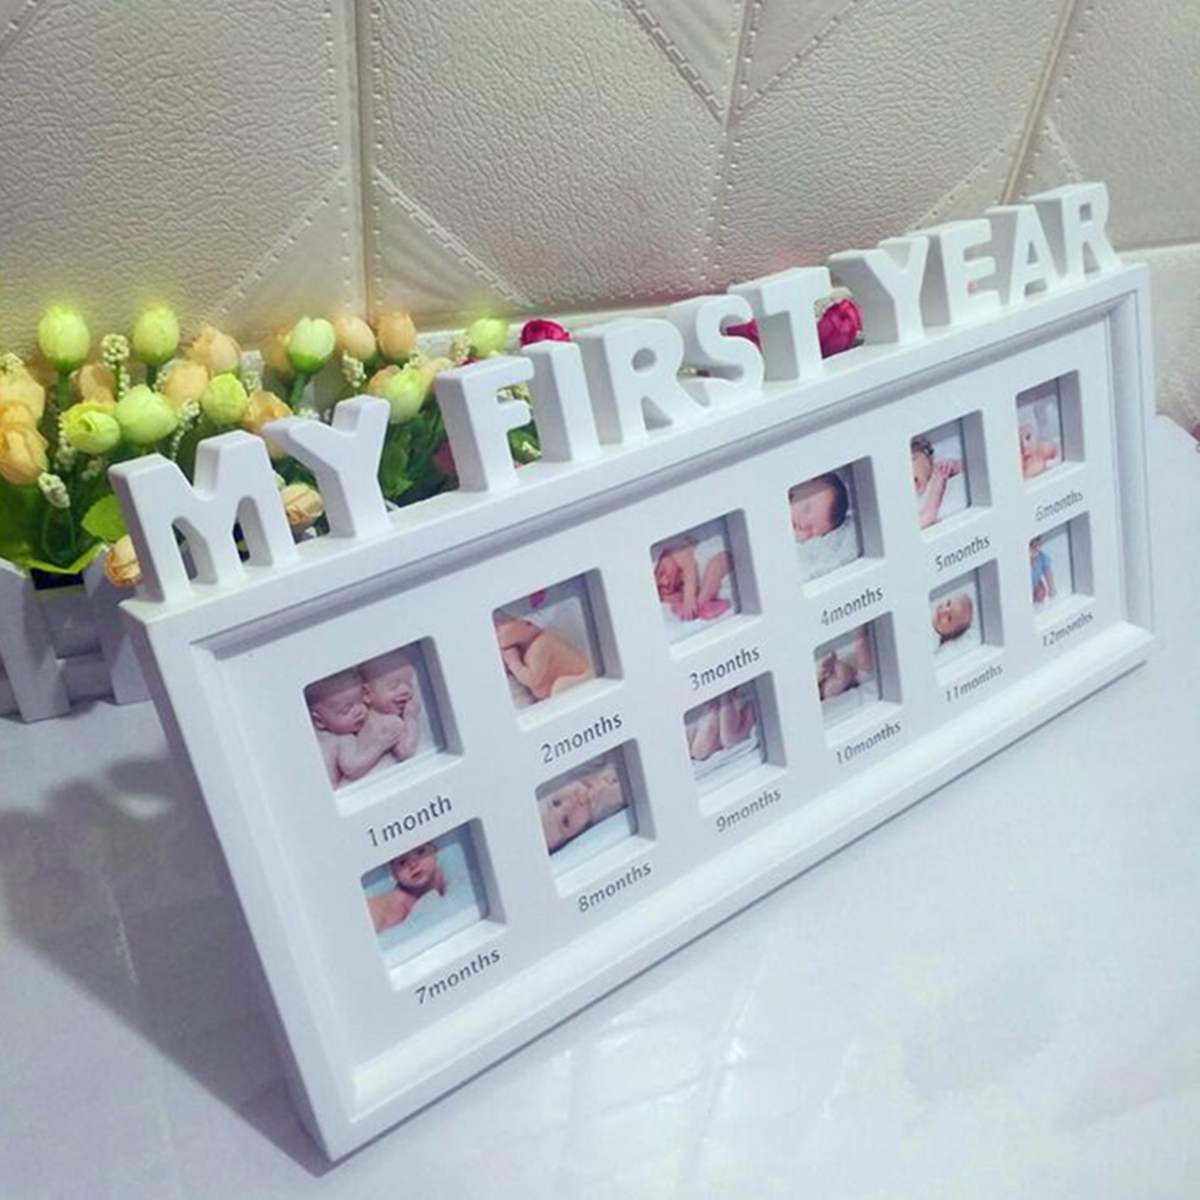 Cute Baby Photo frame DIY handprint or footprint 12 Months Photo Frame Baby Boy Girl My 1 One Year White Blue Pink Home DecorCute Baby Photo frame DIY handprint or footprint 12 Months Photo Frame Baby Boy Girl My 1 One Year White Blue Pink Home Decor